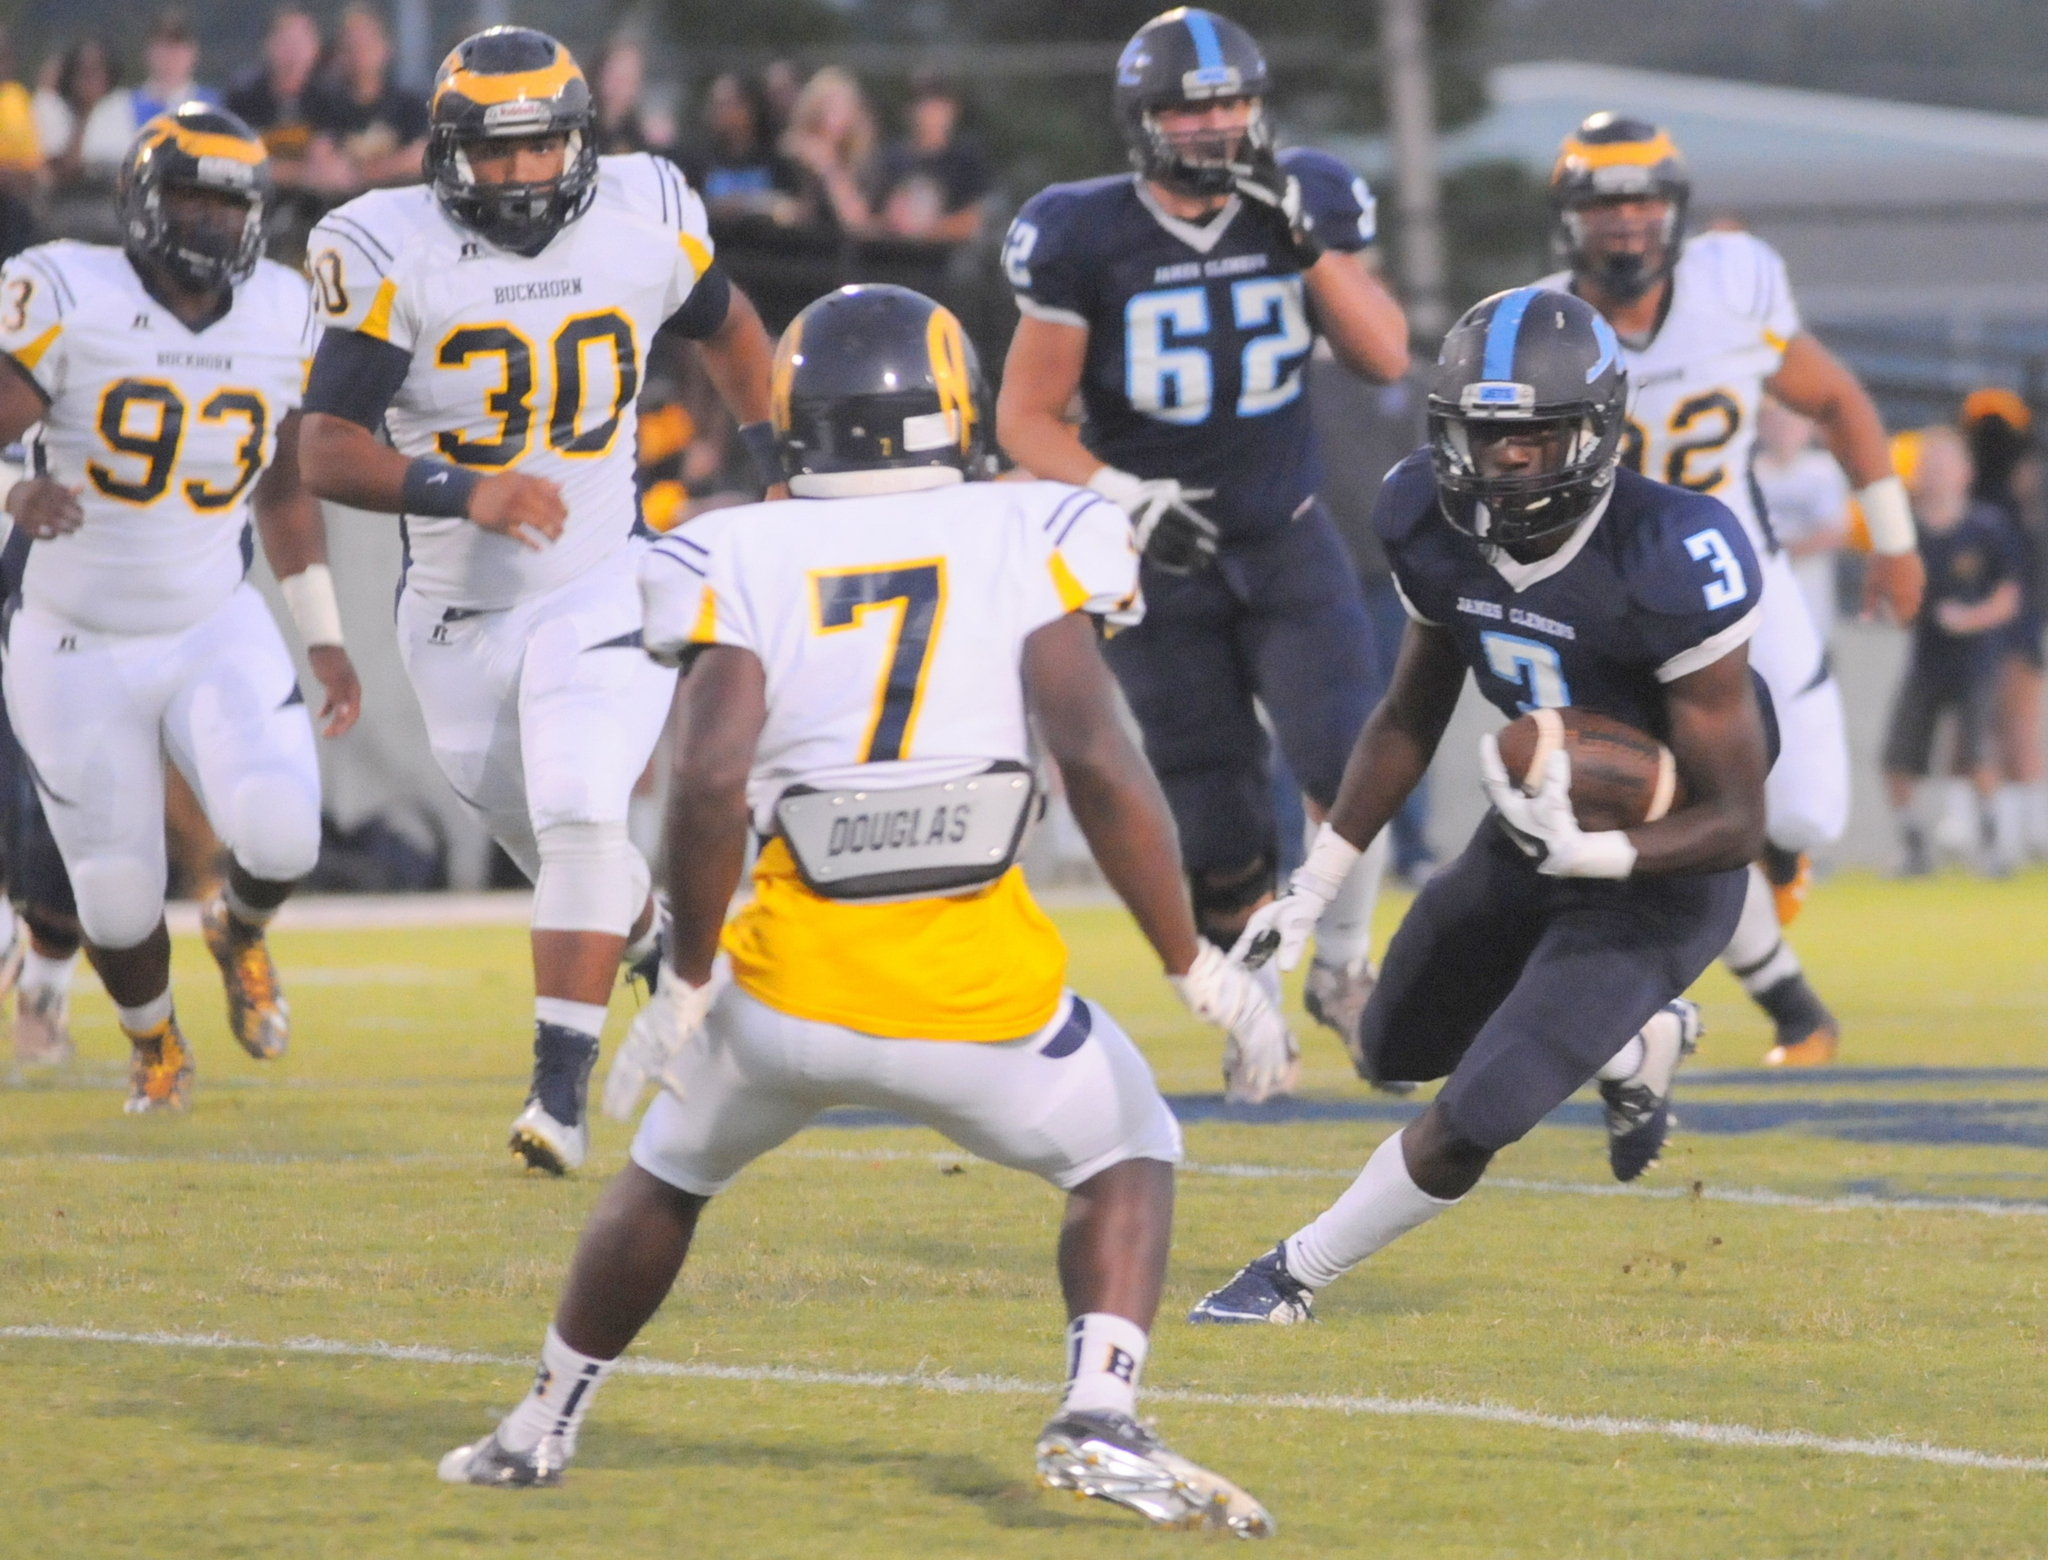 Buckhorn at James Clemens football